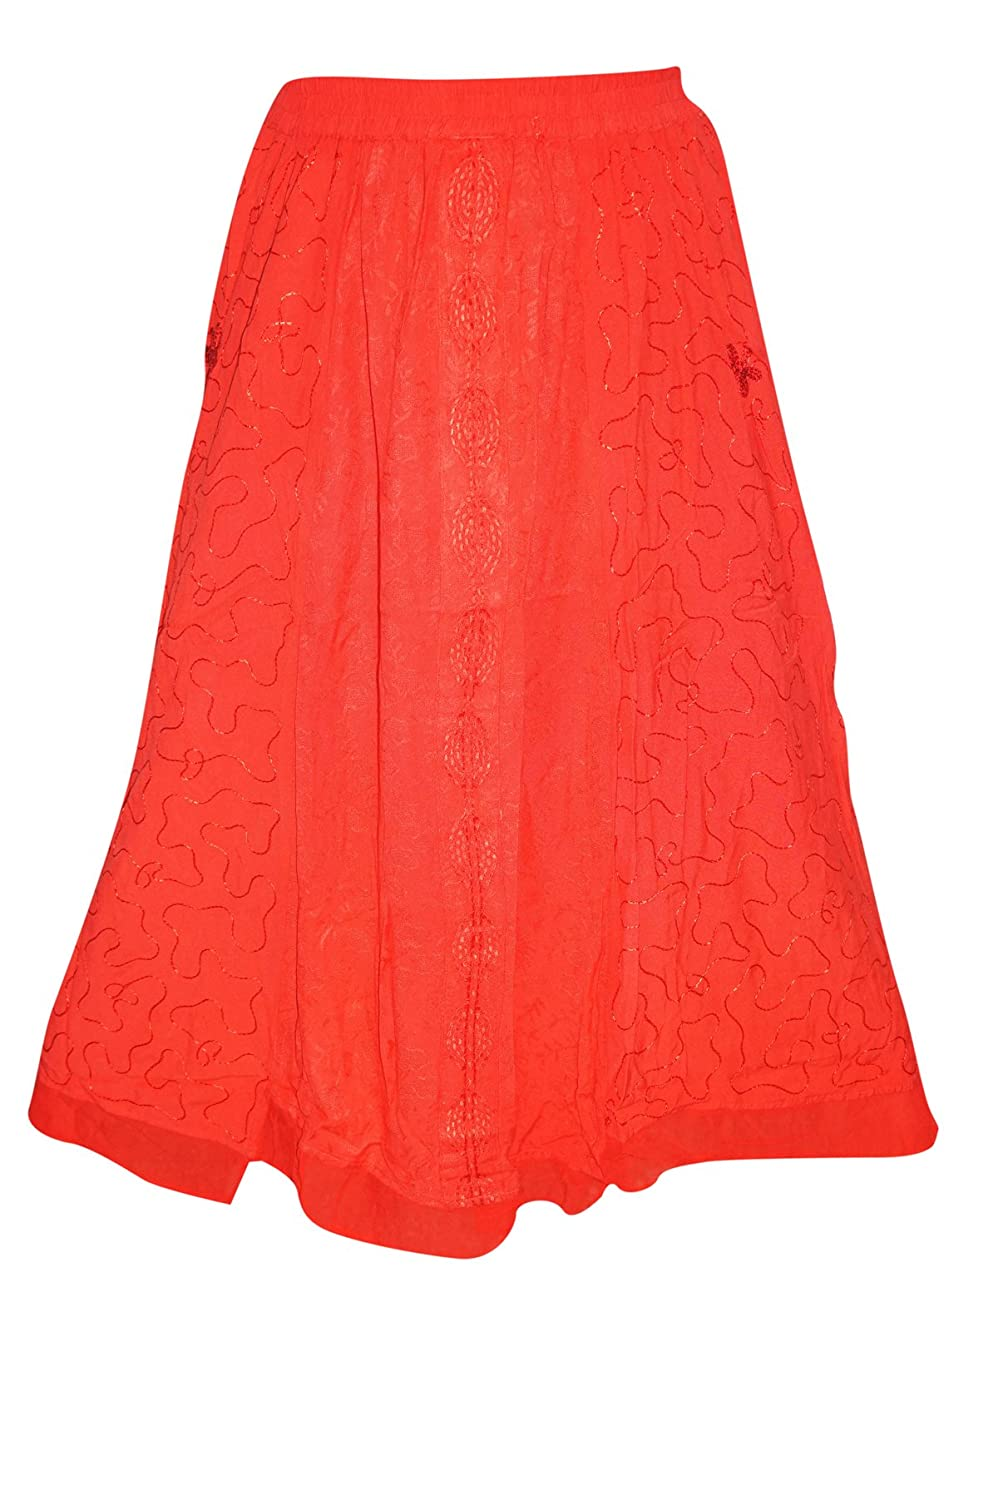 Mogul Interior Boho Long Skirt Hot Red Embroidered Bohemian Gypsy For Women M